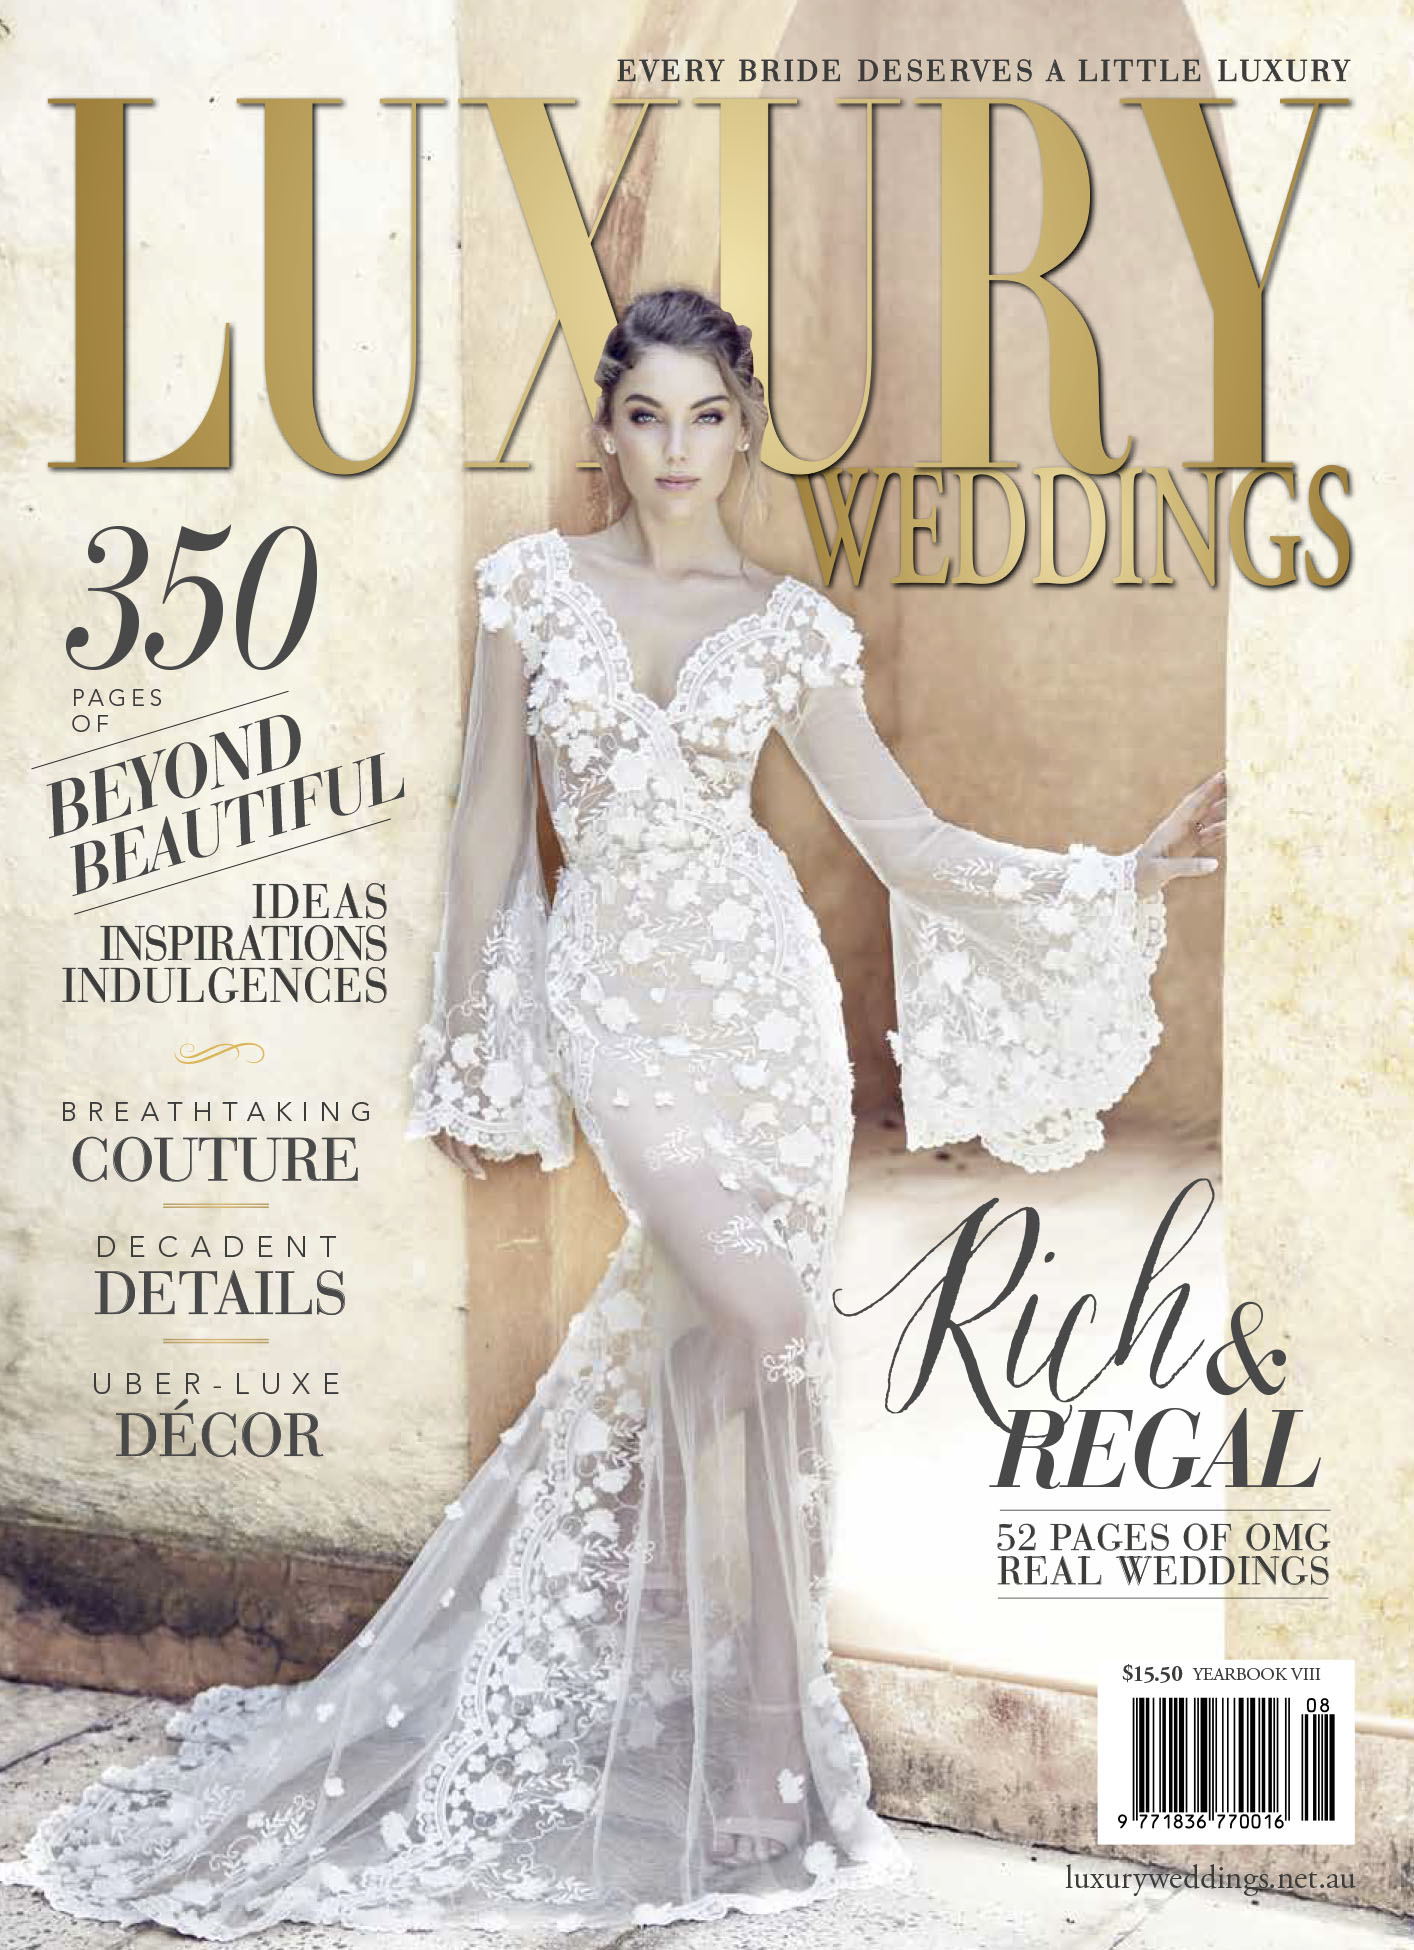 Luxury Wedding volume 8 2016 featuring tanya anic bridal.jpg